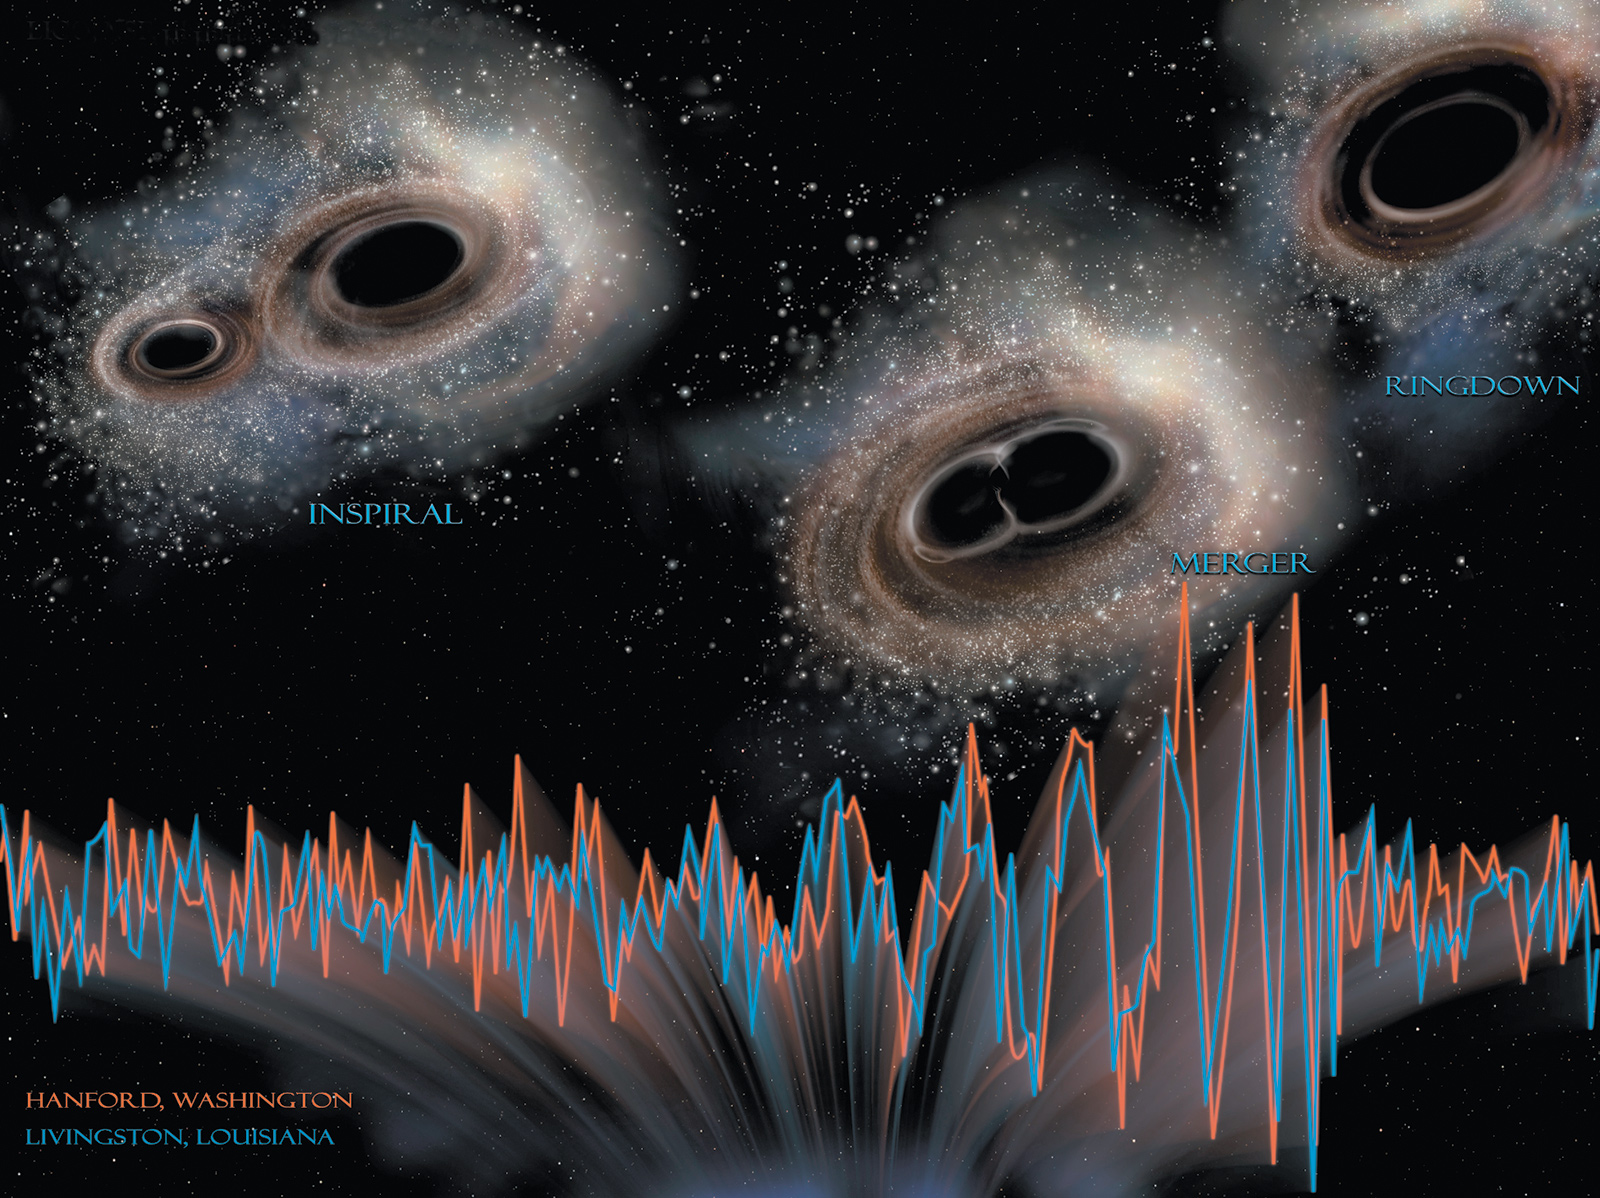 A simulation of the collision of two black holes, which merged about 1.3 billion years ago to form a single black hole sixty-two times the mass of the sun. In the first discovery of its kind, the gravitational waves were detected simultaneously last September by the two branches of the Laser Interferometer Gravitational-Wave Observatory (LIGO), located in Hanford, Washington, and Livingston, Louisiana, and announced in February 2016.